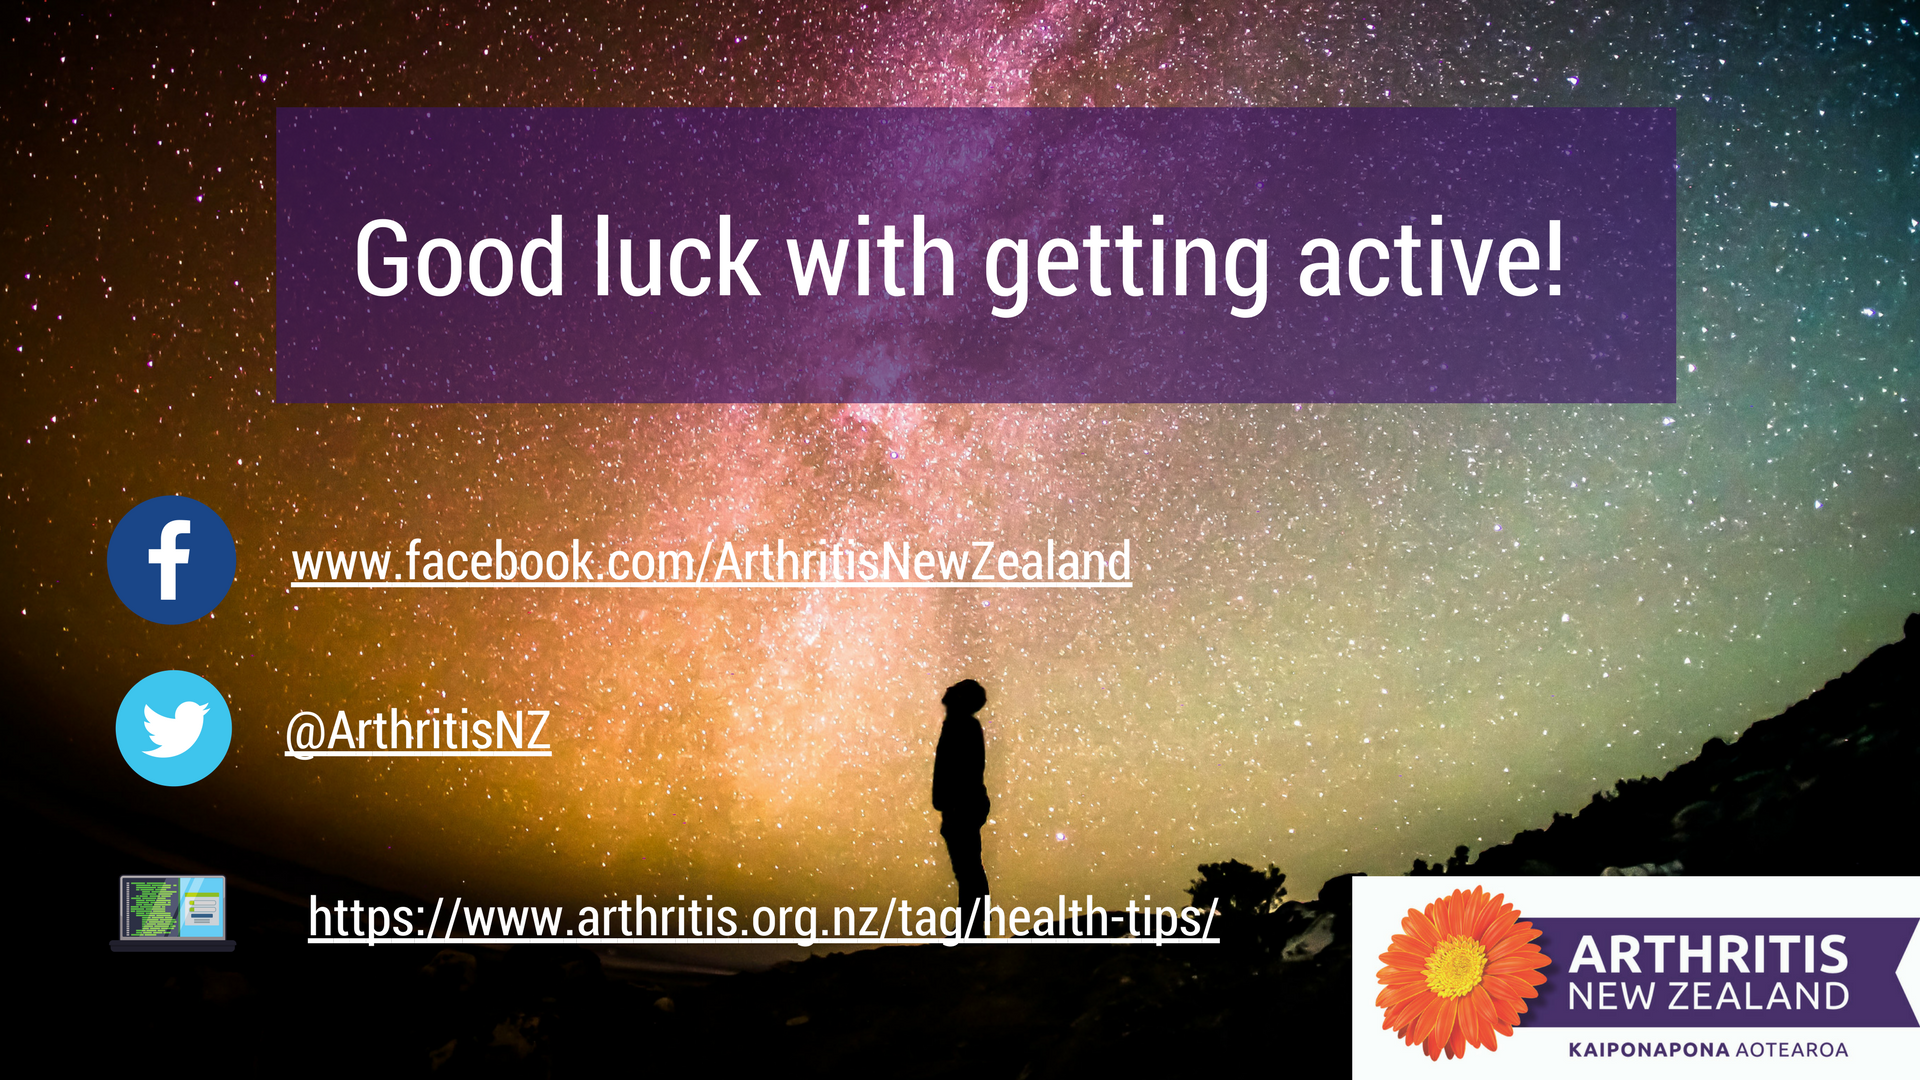 14 - Exercise tips from the Arthritis New Zealand community